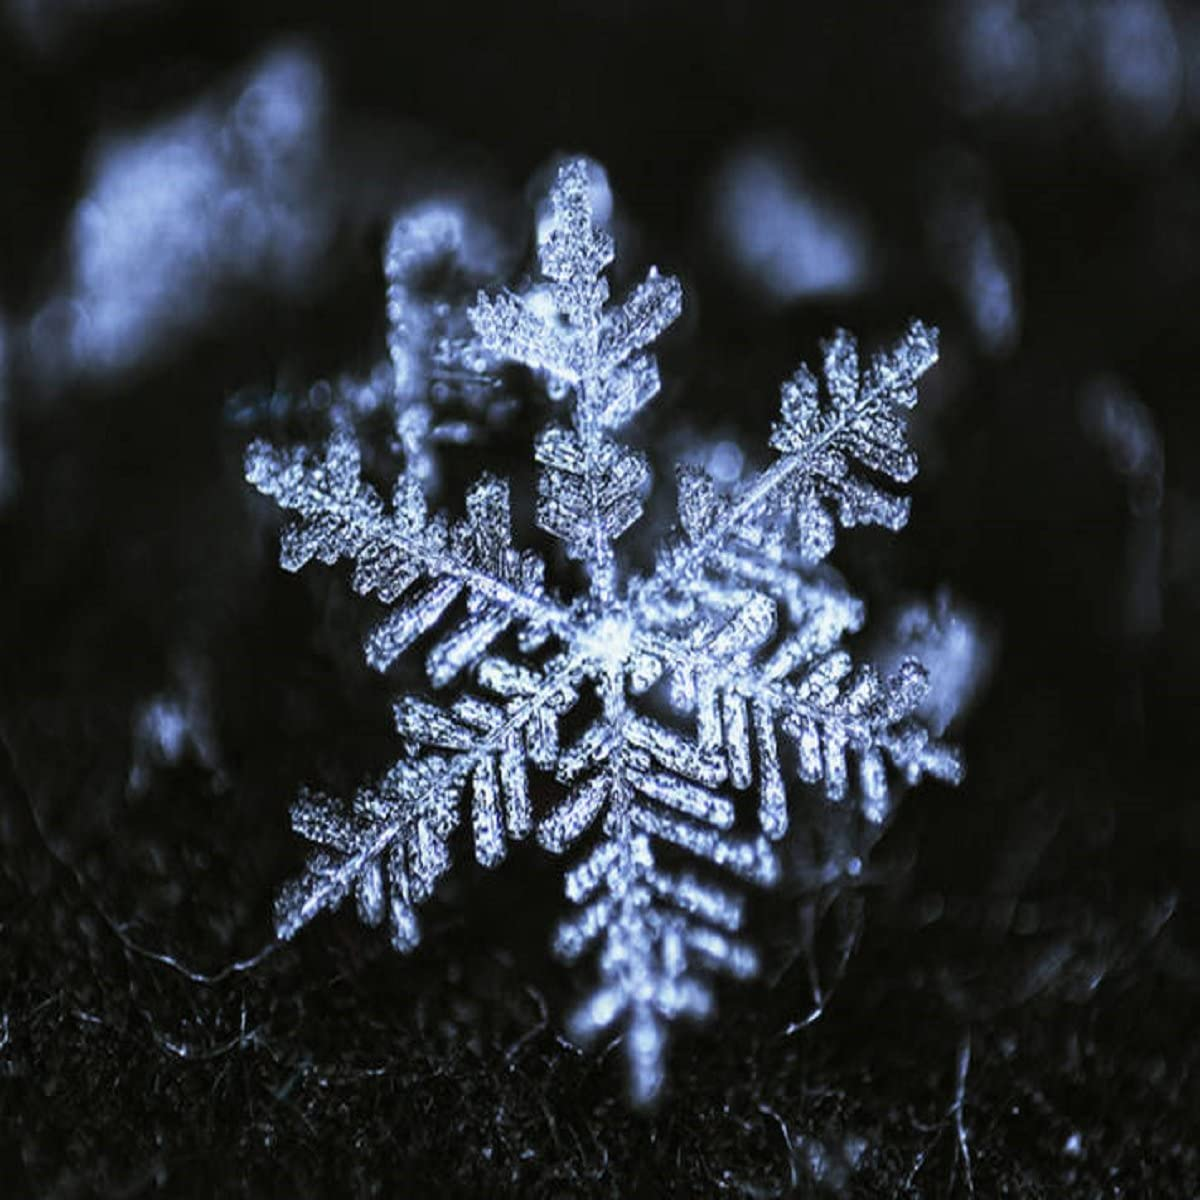 Shimmering Snowflake Fragrance Oil - 16 OZ/ 1 LB - for Candle & SOAP Making by VIRGINIA CANDLE SUPPLY - Free S&H in USA